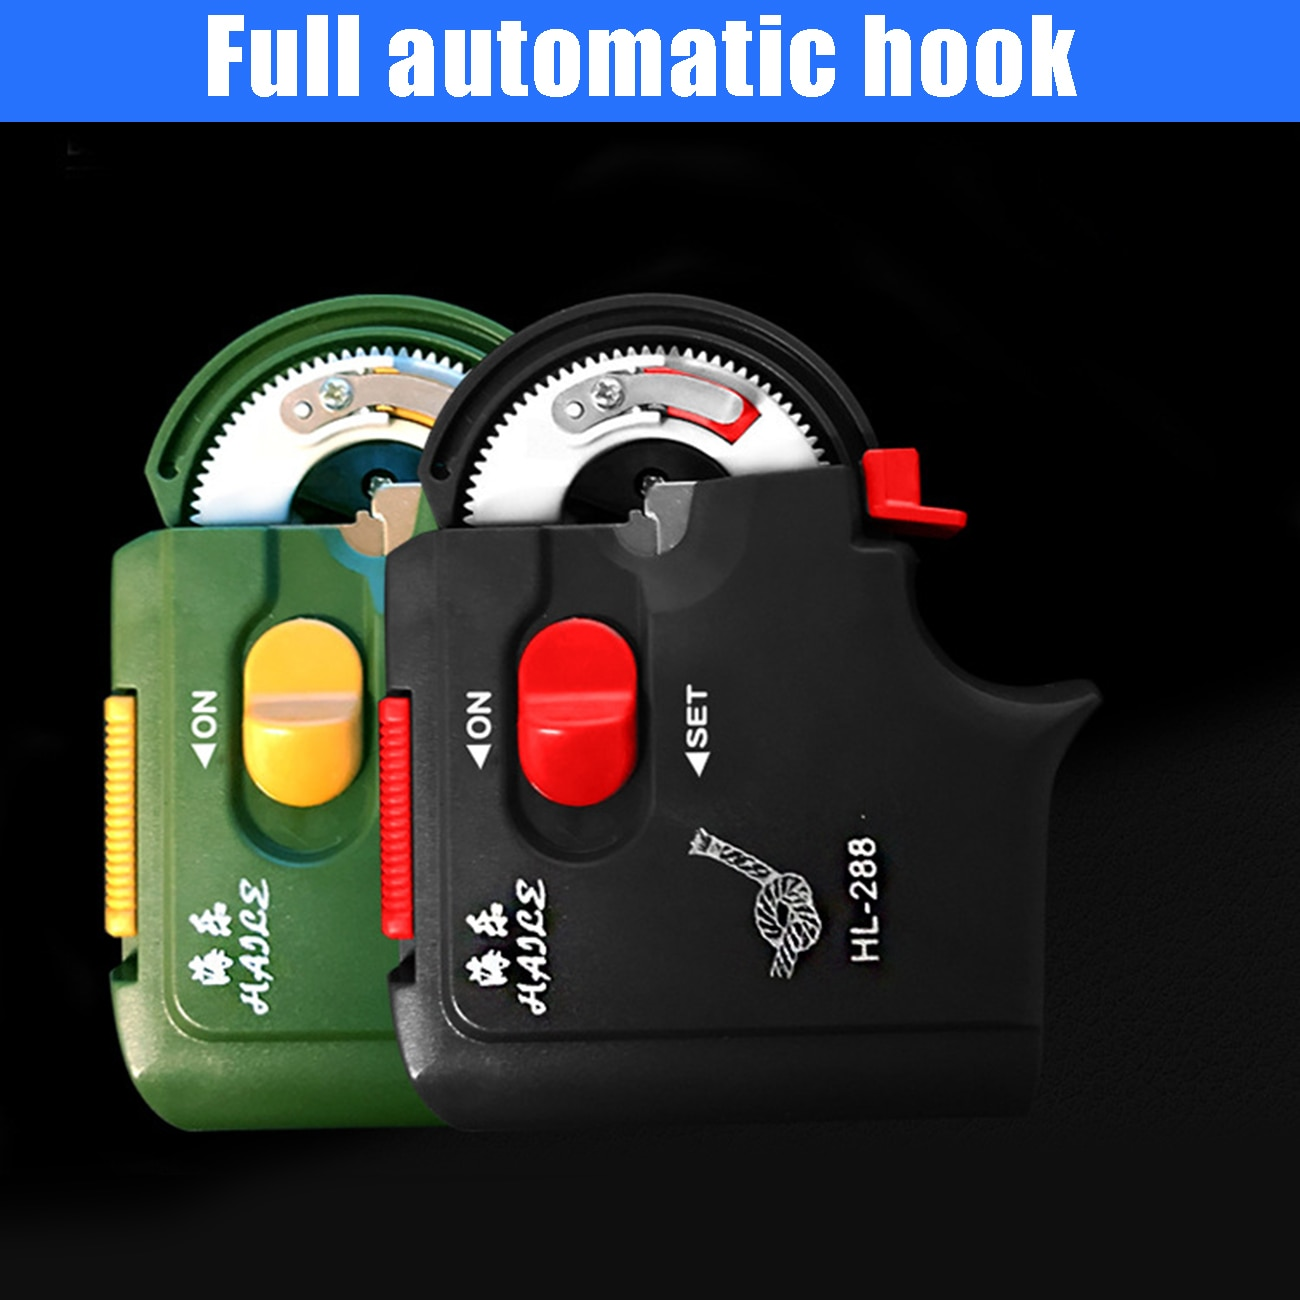 New Automatic Portable Electric Fishing Hook Tier Machine Fishing Accessories Tie Fast Fishing Hooks Line Tying Device Equipment enlarge